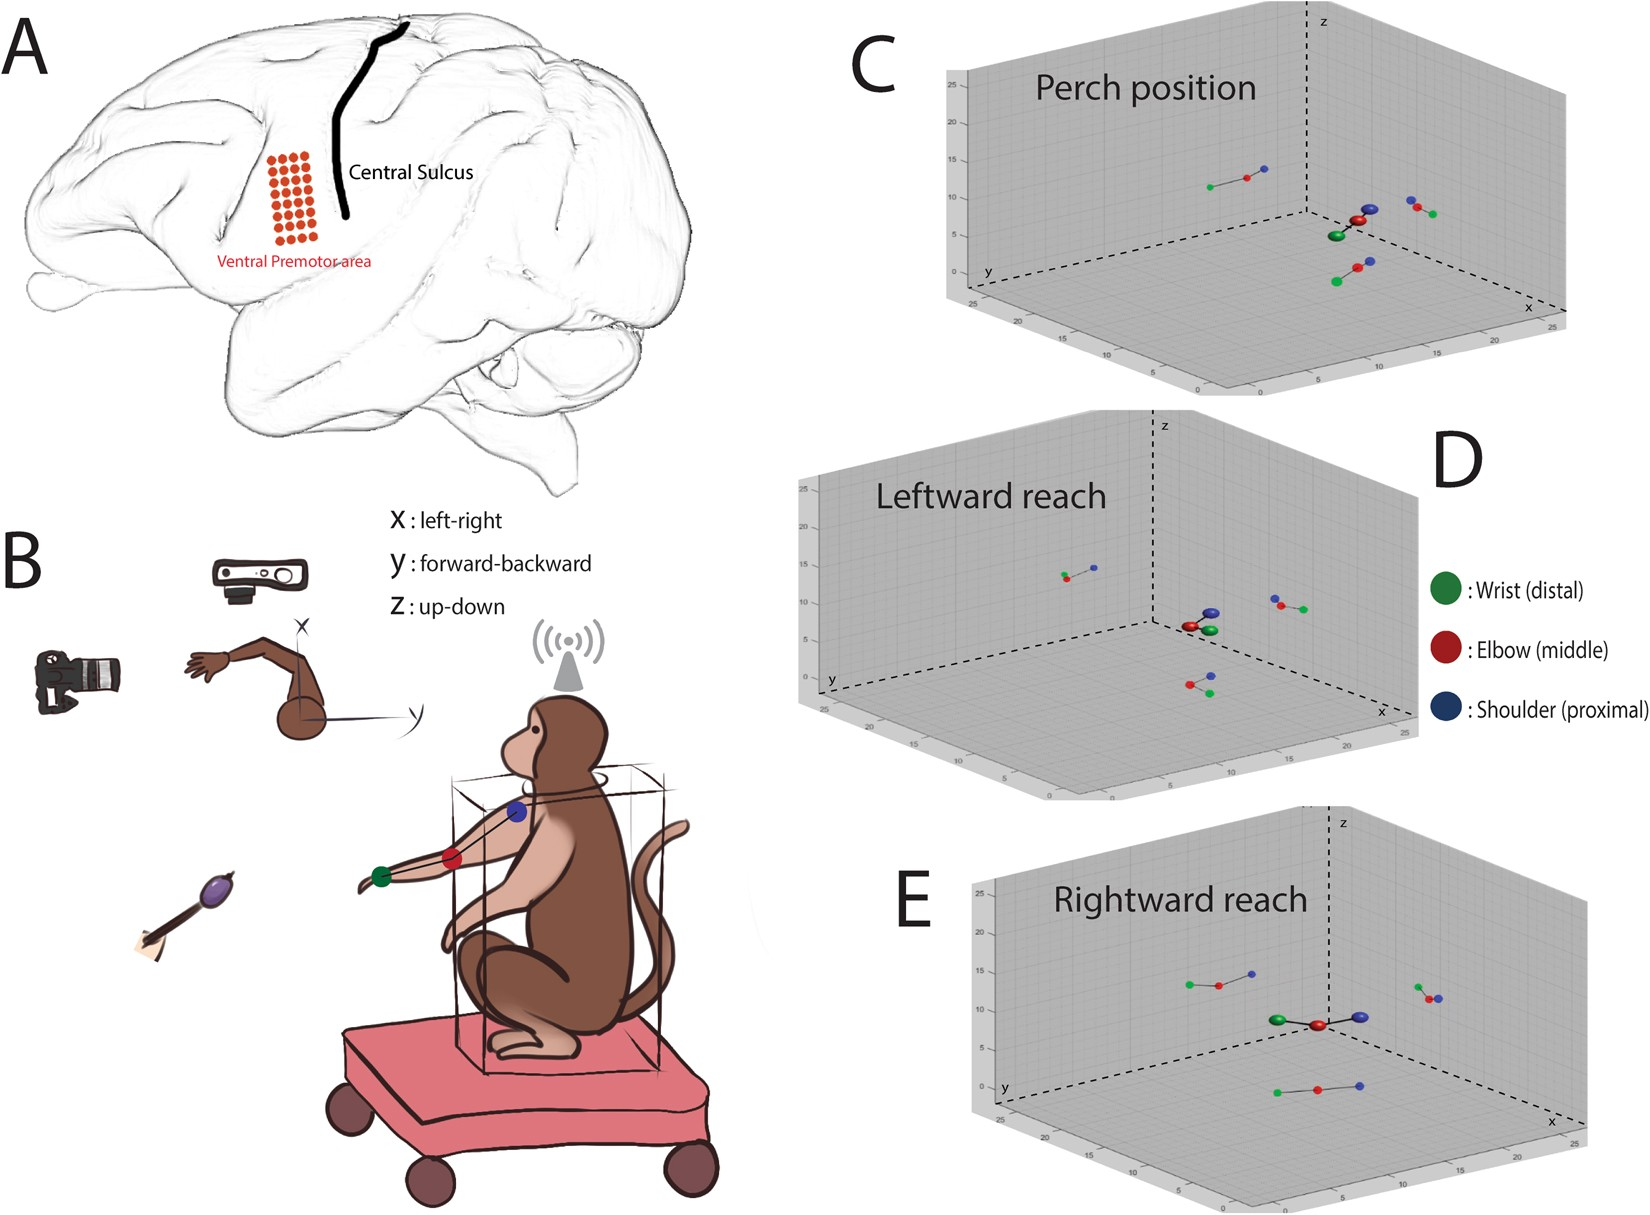 Decoding Unconstrained Arm Movements In Primates Using High Density 3d Tooth Diagram Additionally Parts Of A Bridge For Teeth Electrocorticography Signals Brain Machine Interface Use Scientific Reports